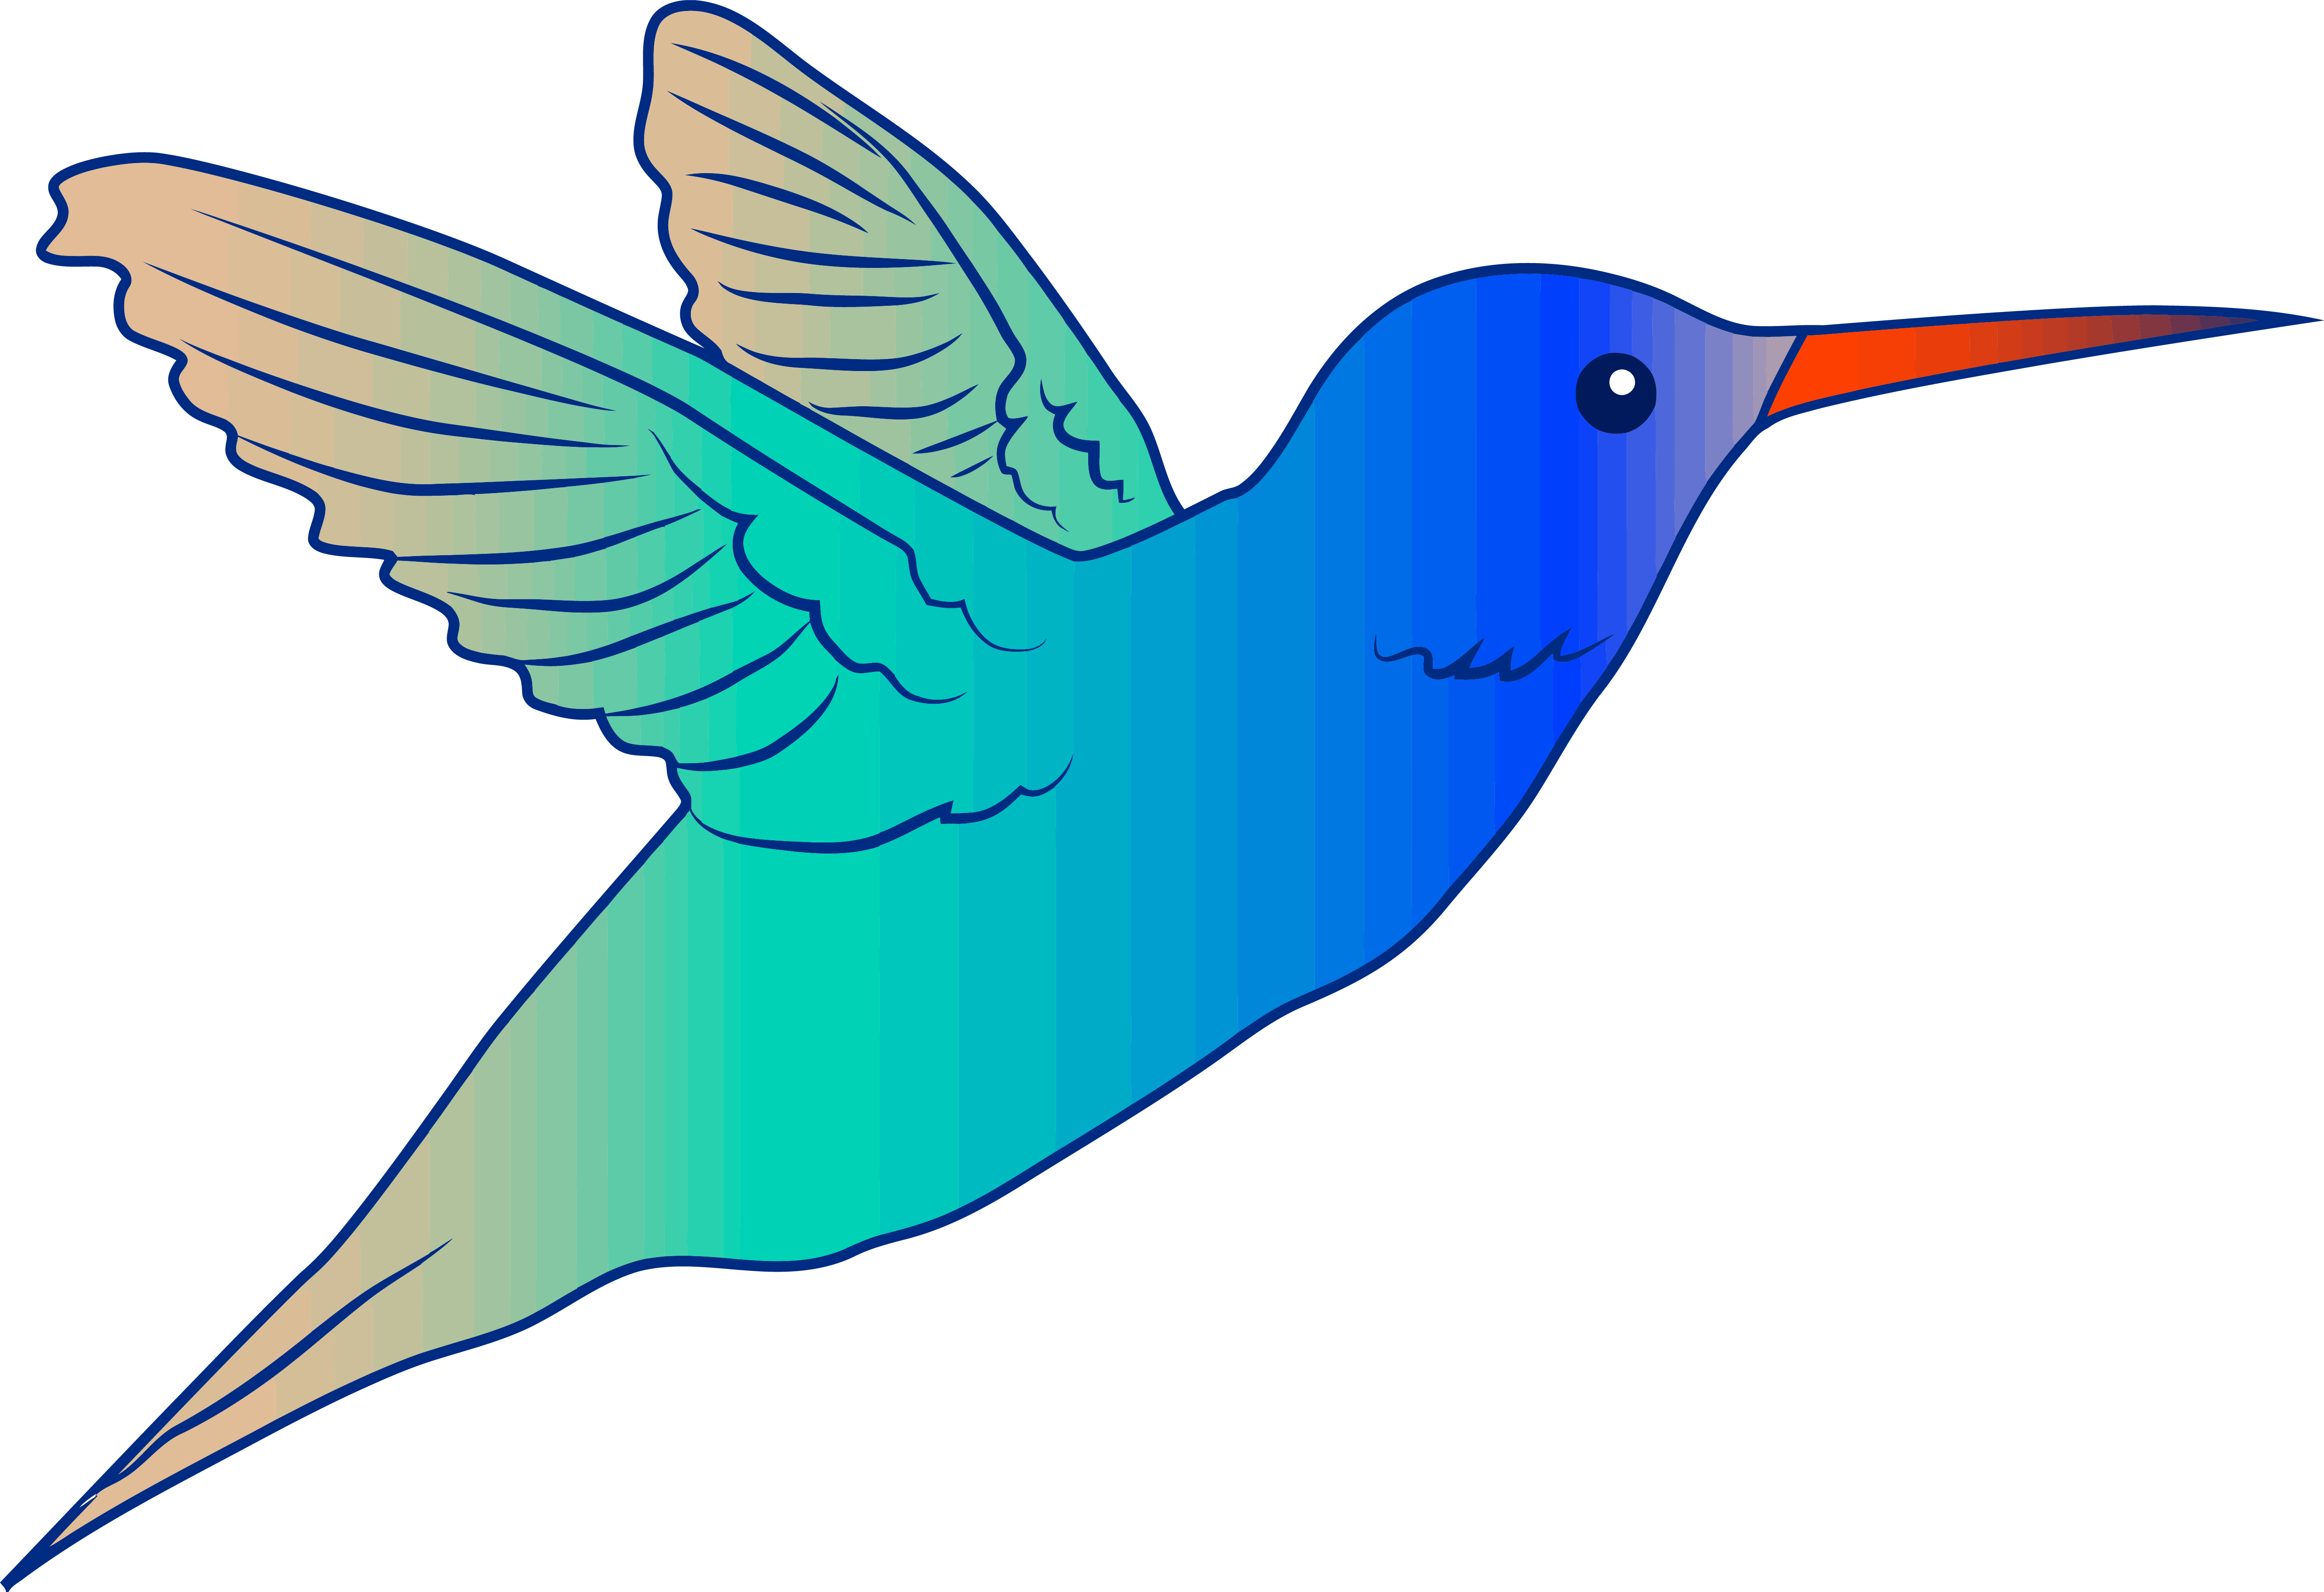 Flying clipart parrot. Cute bird hummingbird illustration